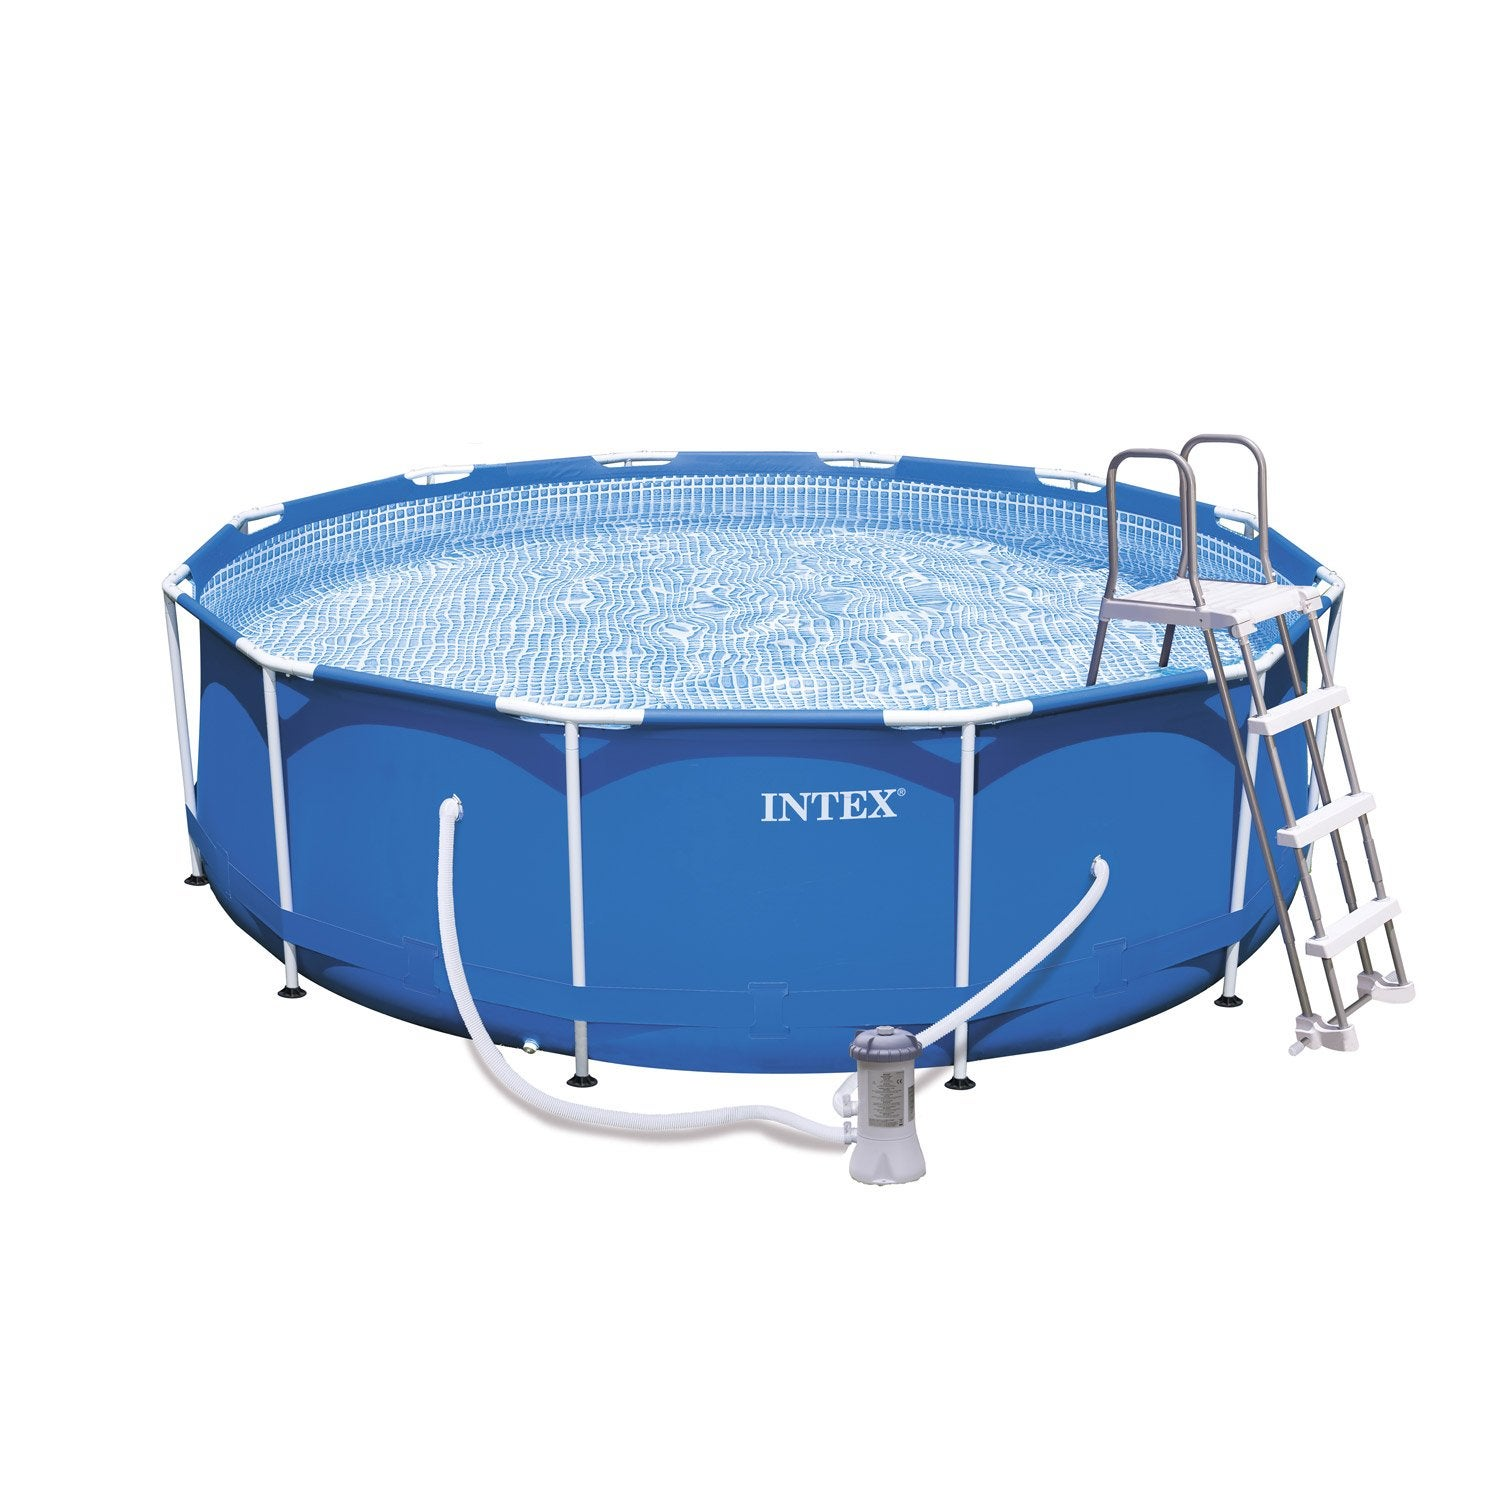 Piscine hors sol autoportante tubulaire m tal frame intex for Piscine 3 boudins intex